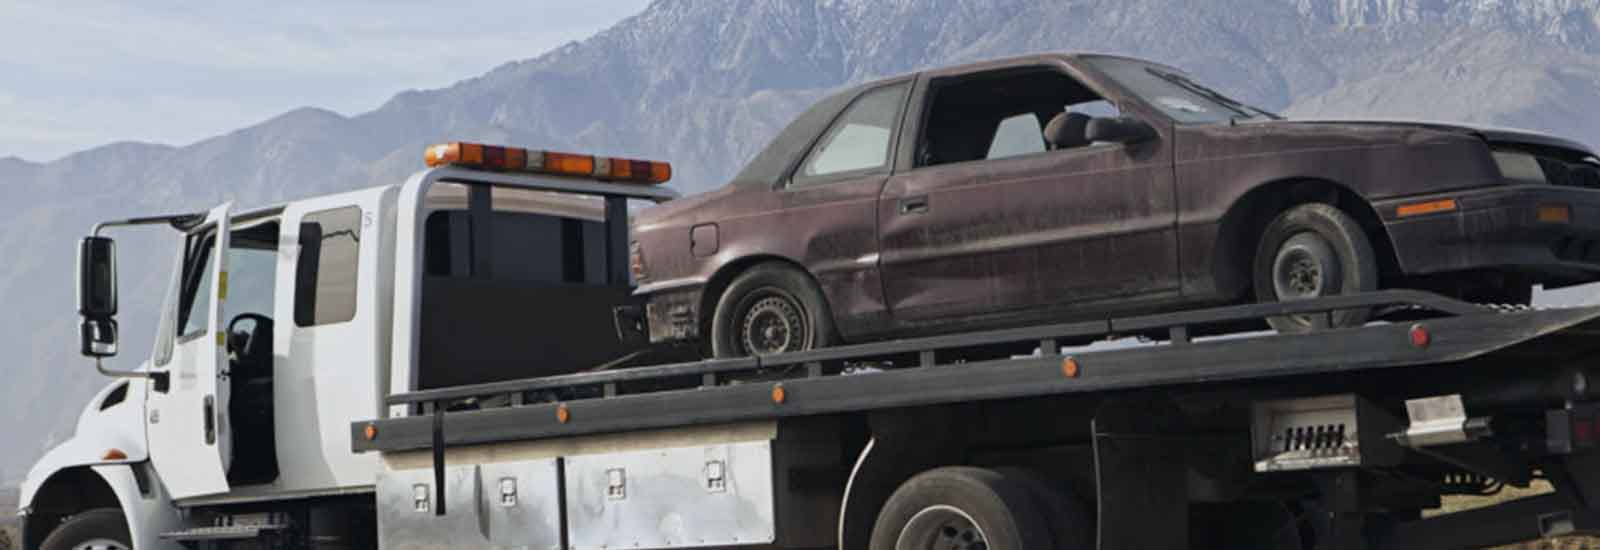 Getting Tow Truck Insurance in Texas